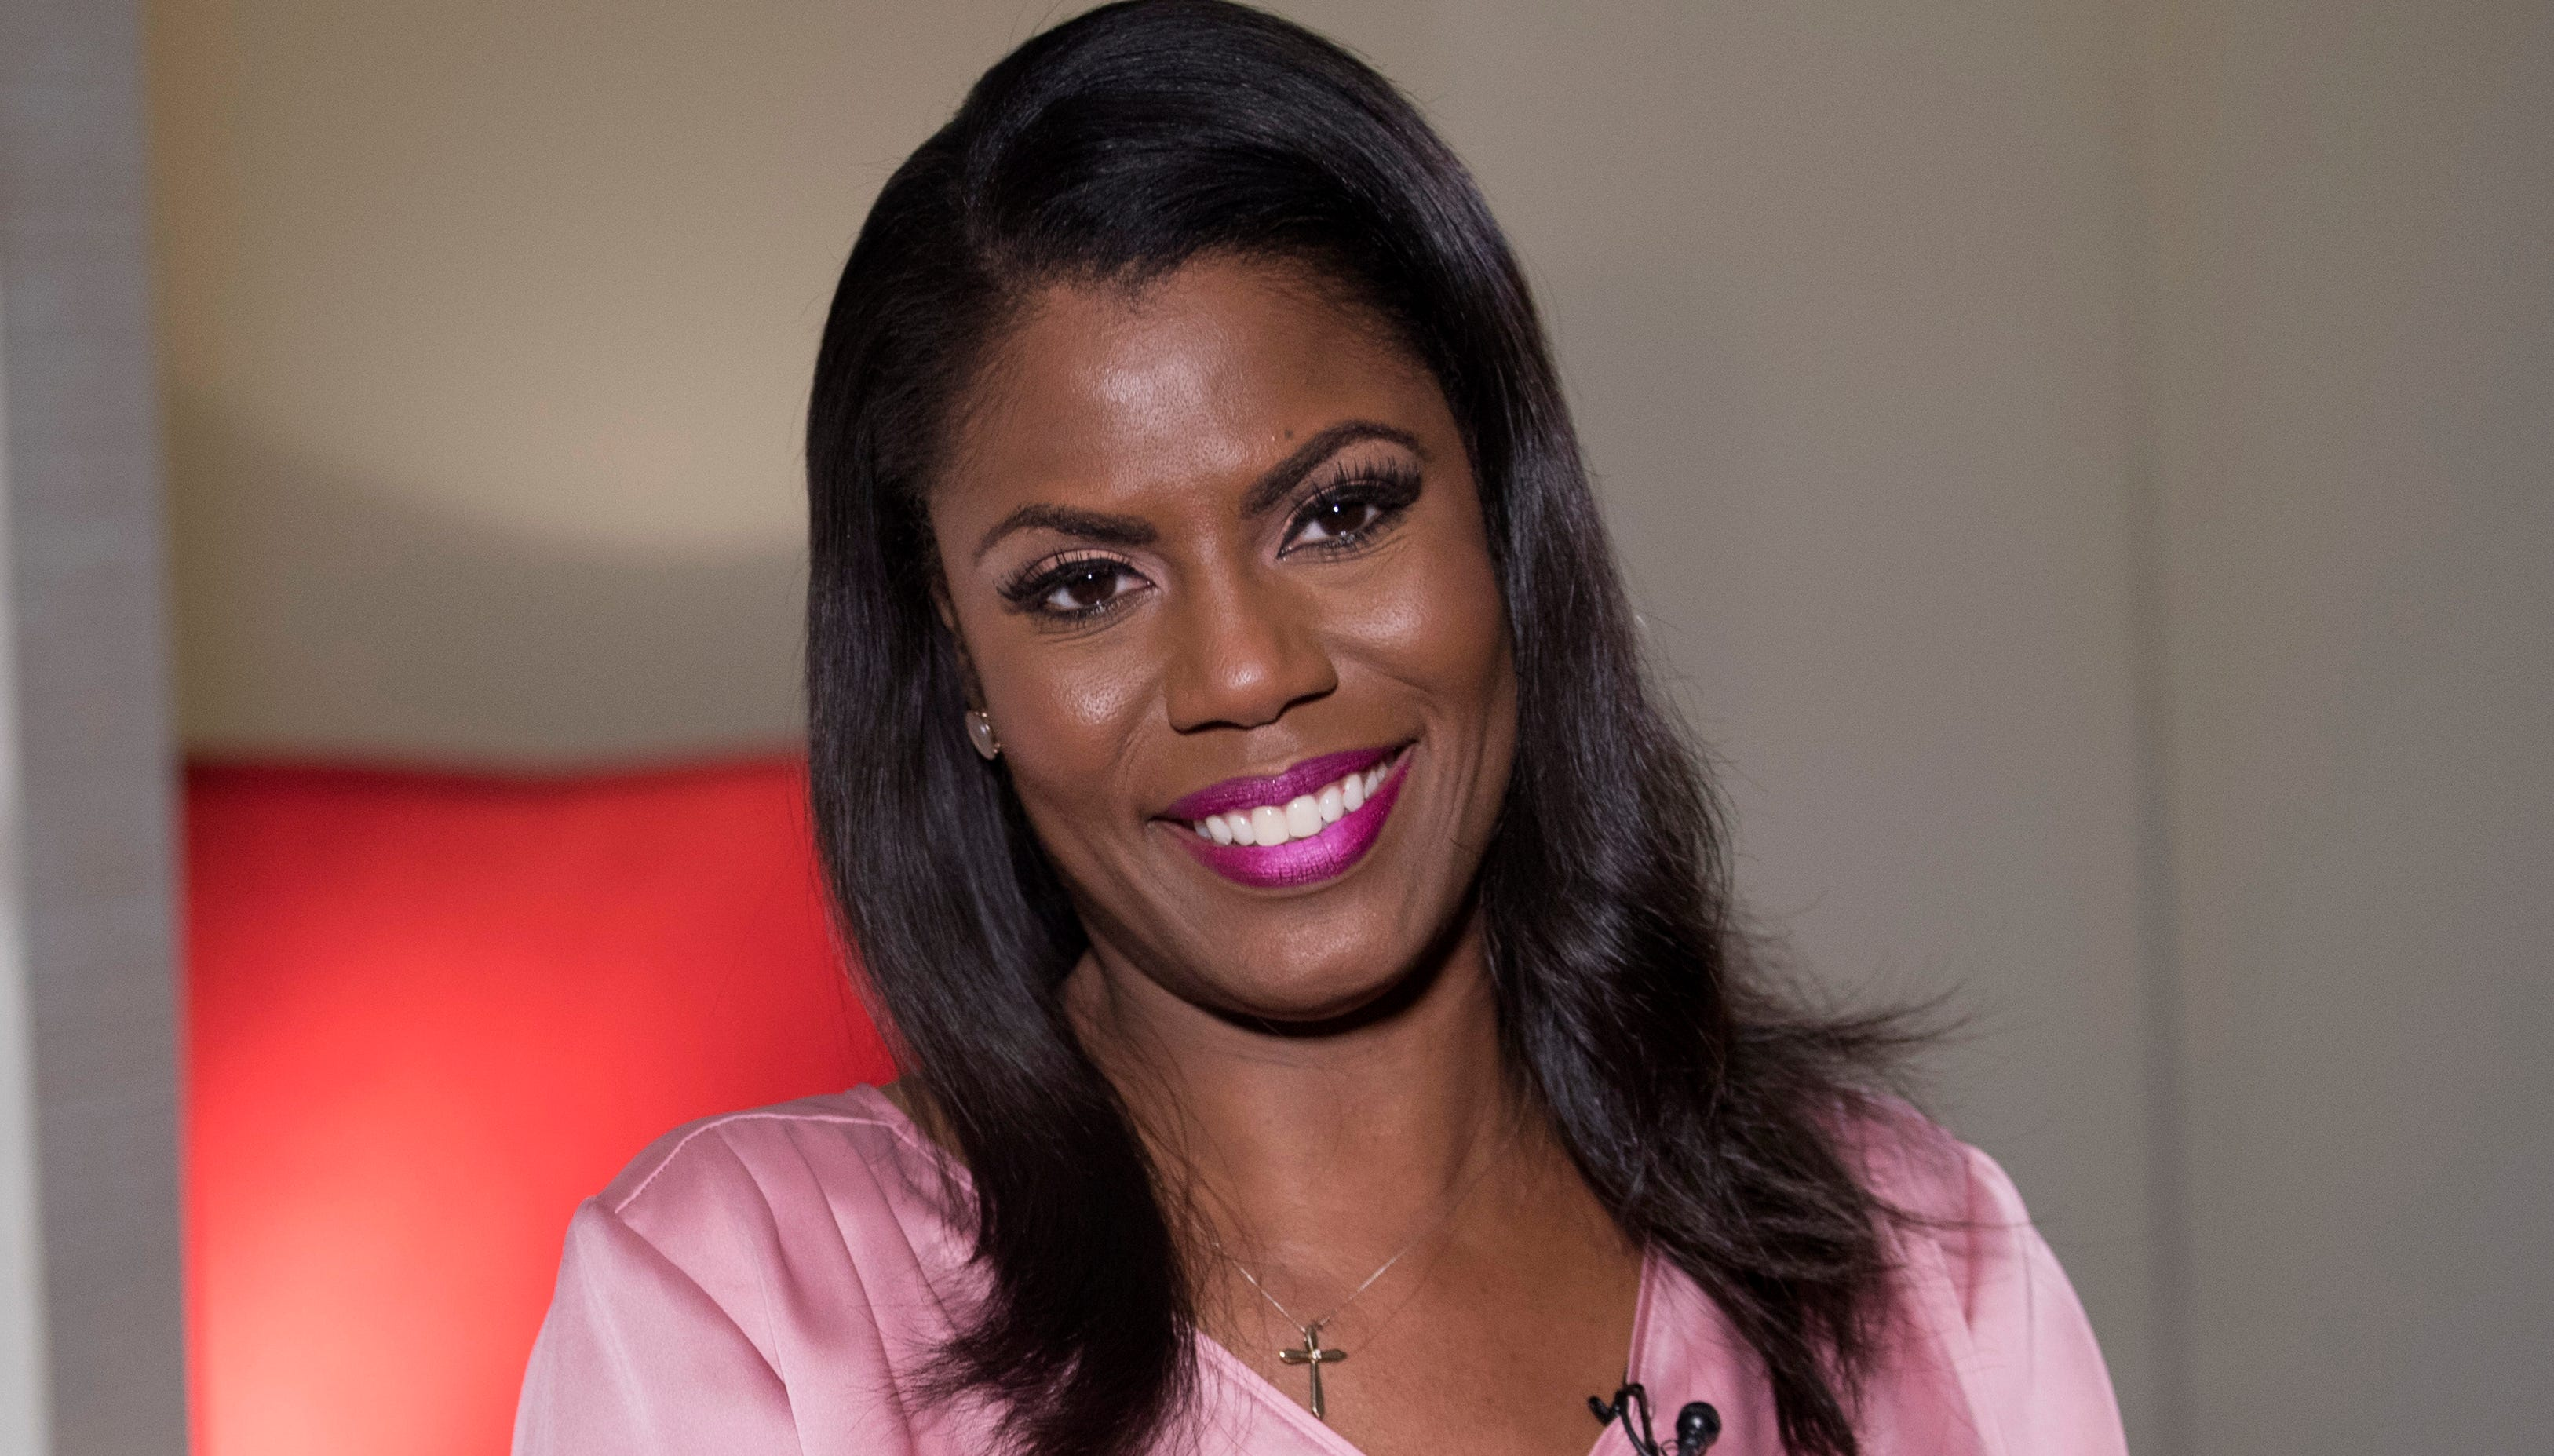 Omarosa tells 'The View' that Trump used expletive to describe Haiti back in early 2017